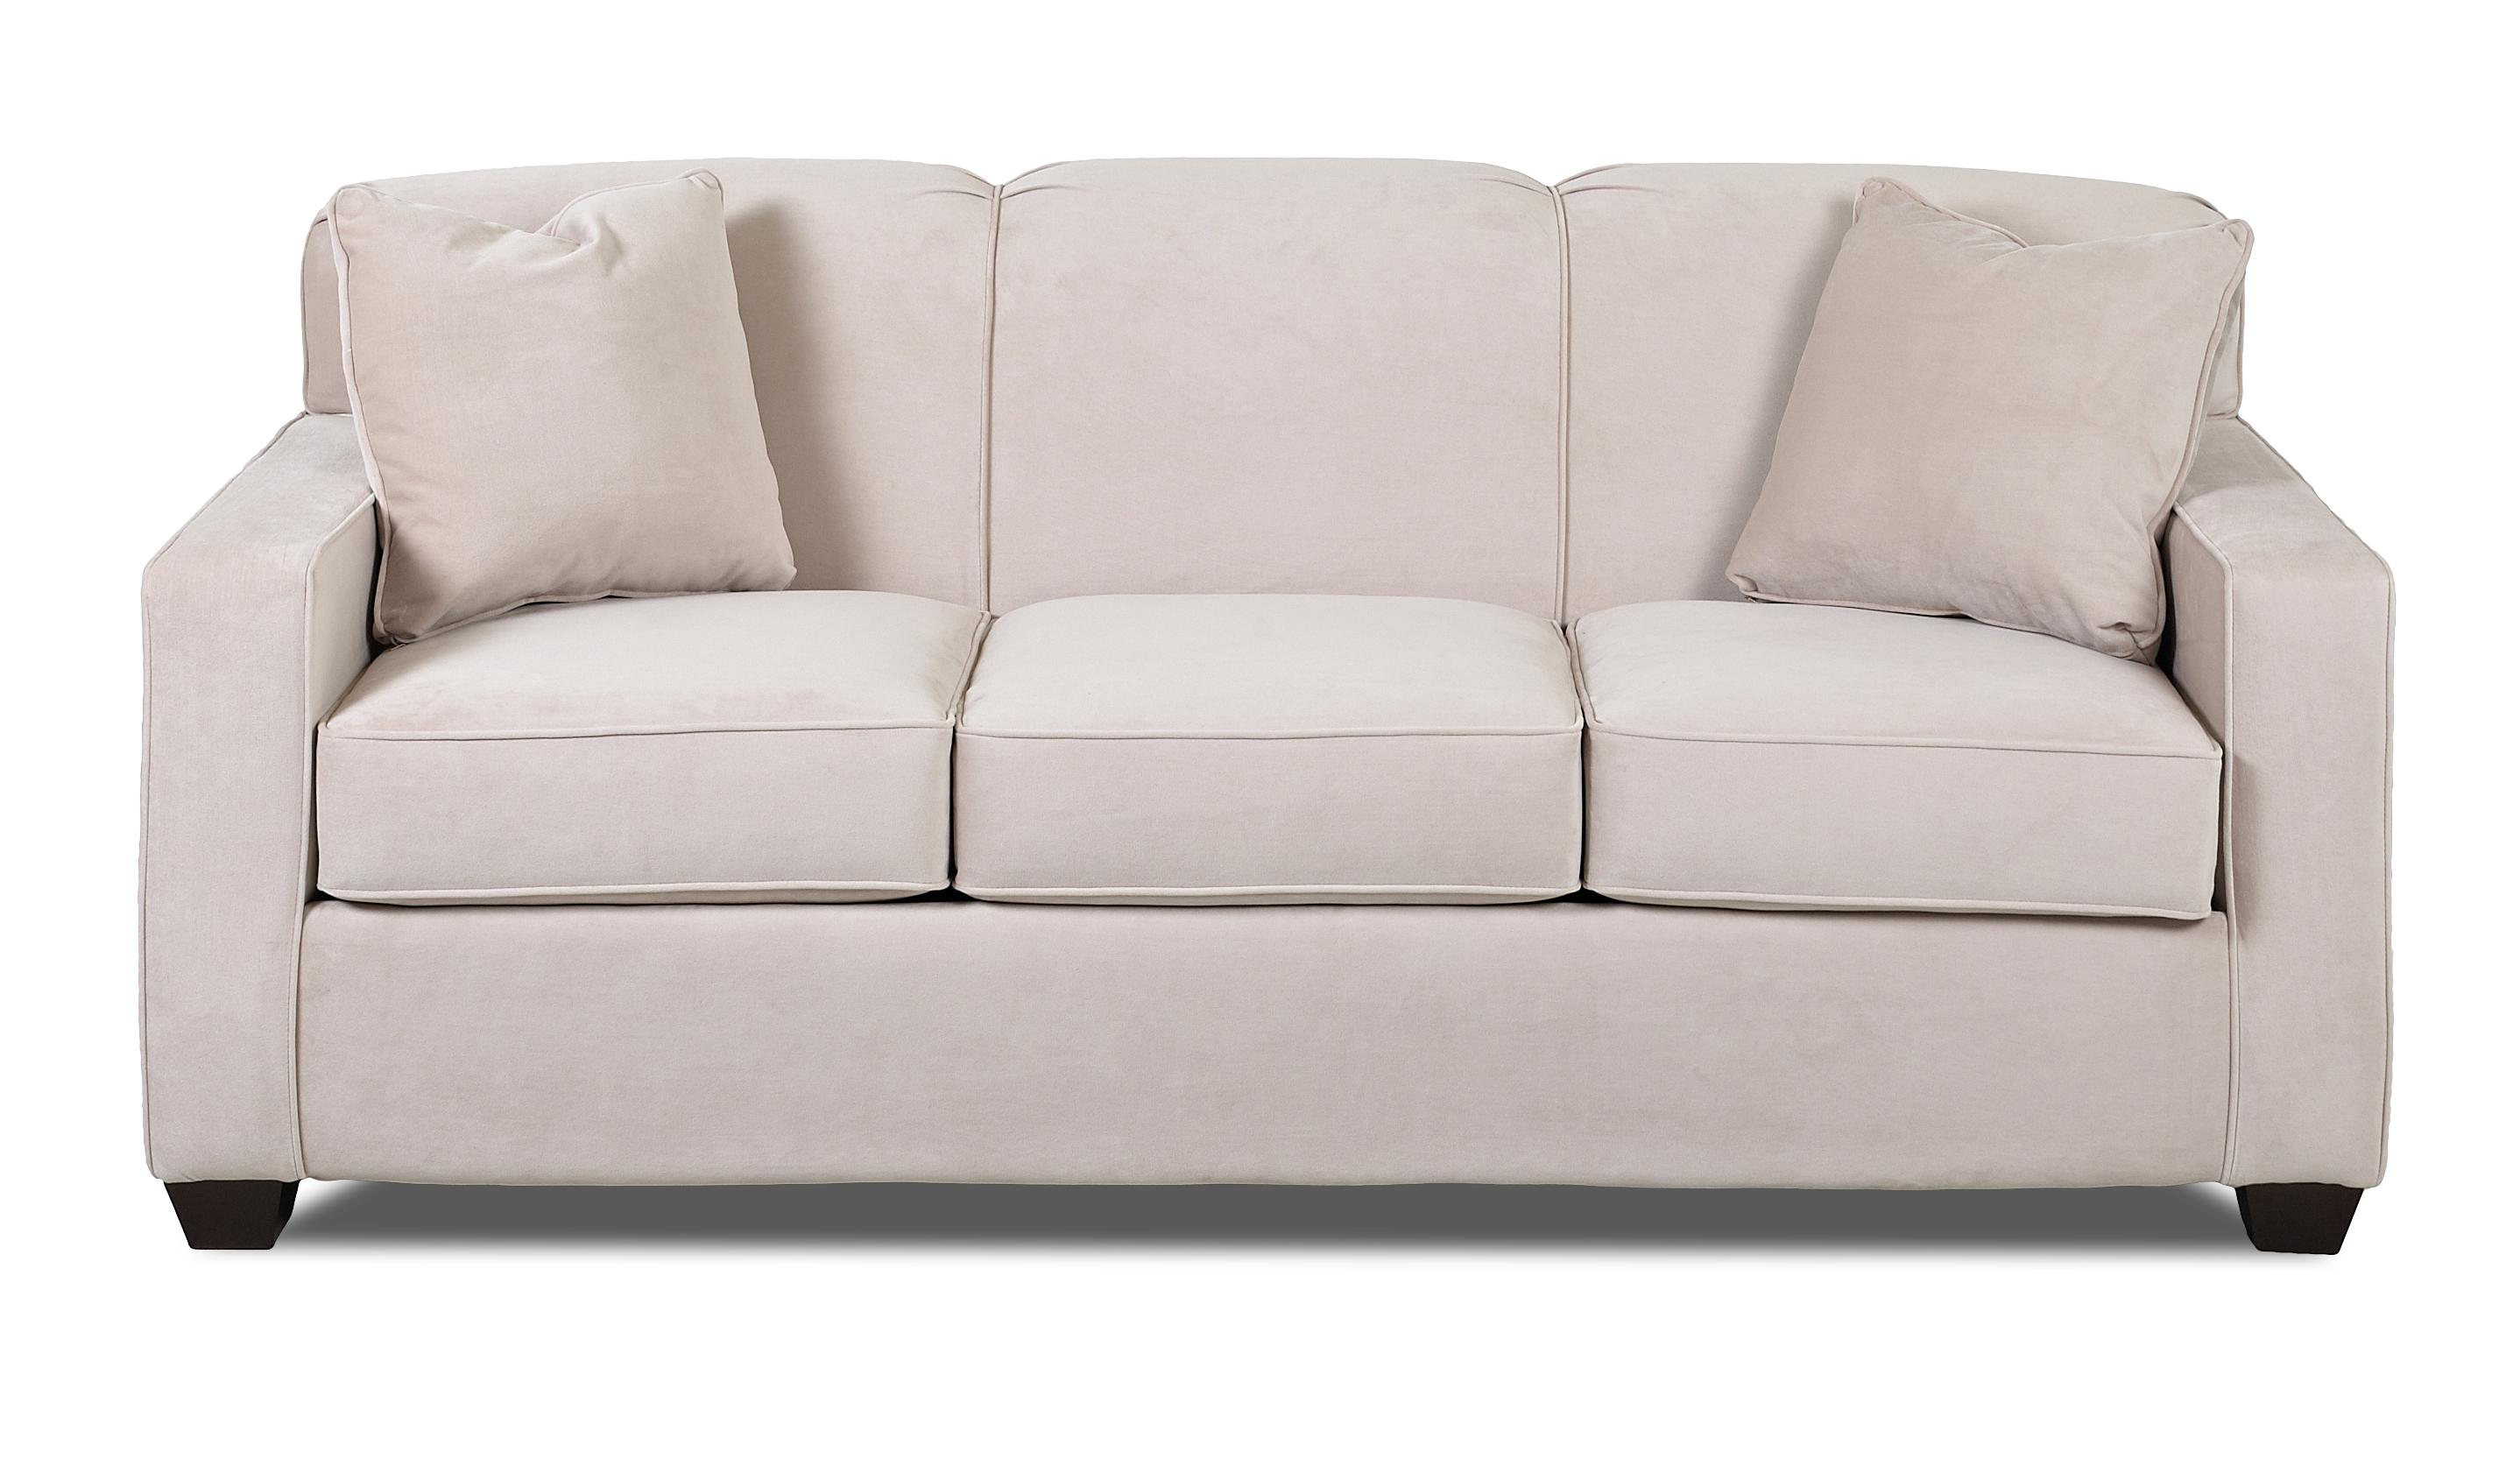 sleeper sofa no arms bergamo sofology contemporary innerspring queen with tight